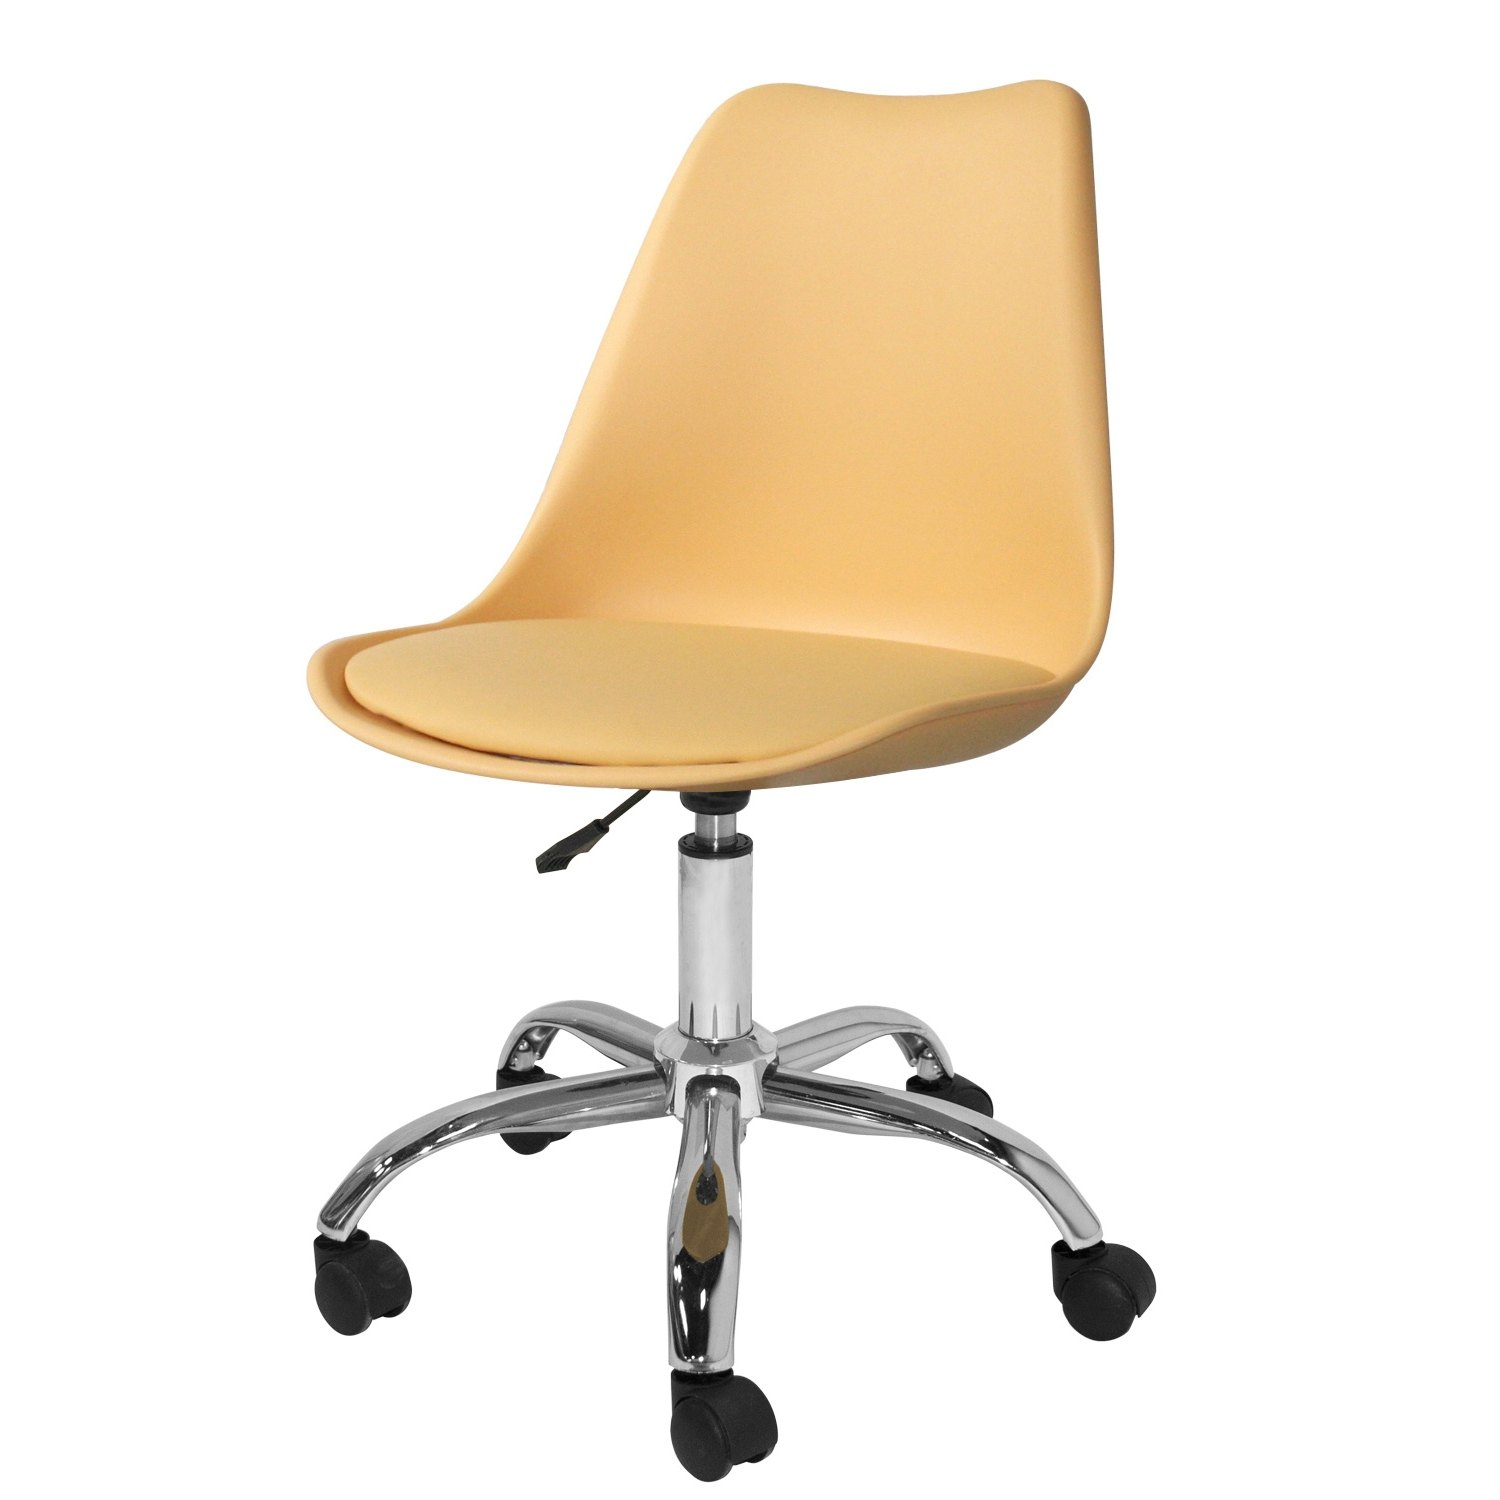 Silla eames oficina silla new tower office silla de for Silla escritorio diseno